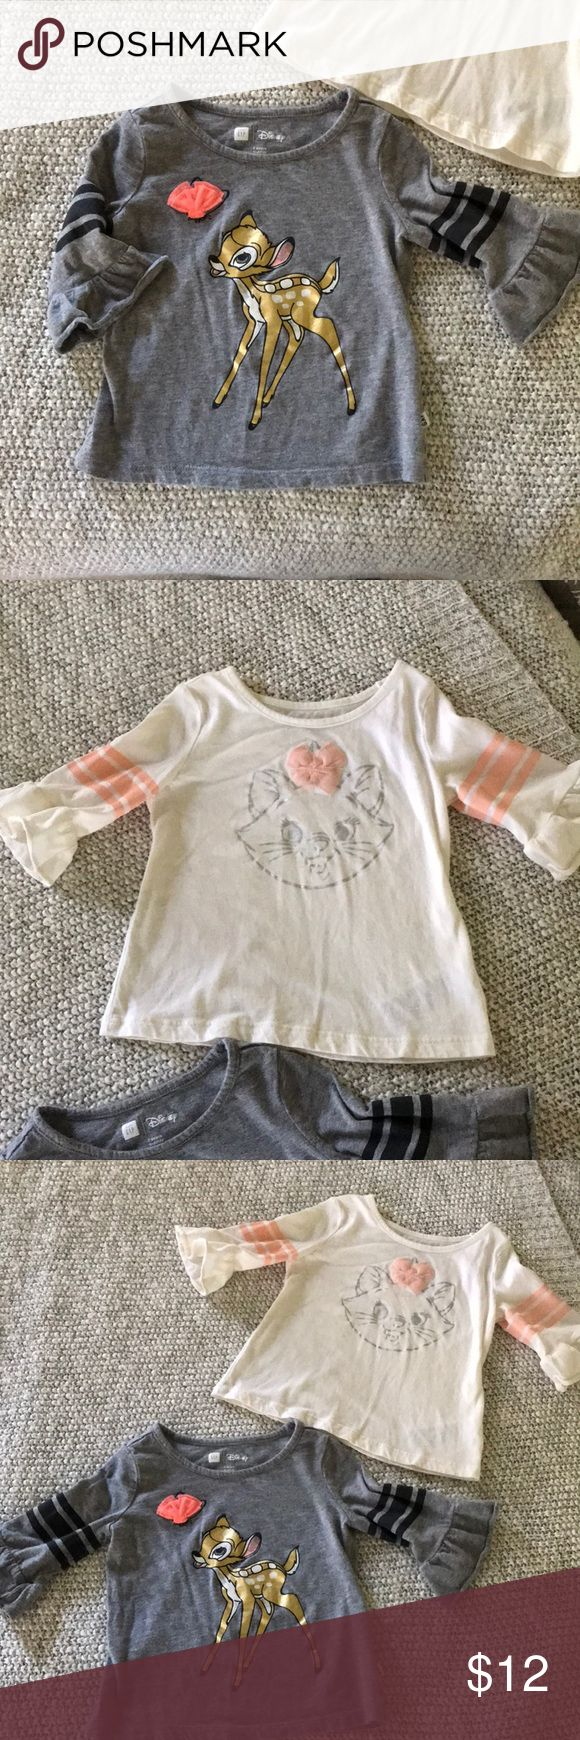 Disney Baby Gap toddler tops. Disney Baby Gap toddler tops. Bambi and The Aristocrats.  Worn a few times/ perfect condition. GAP Shirts & Tops